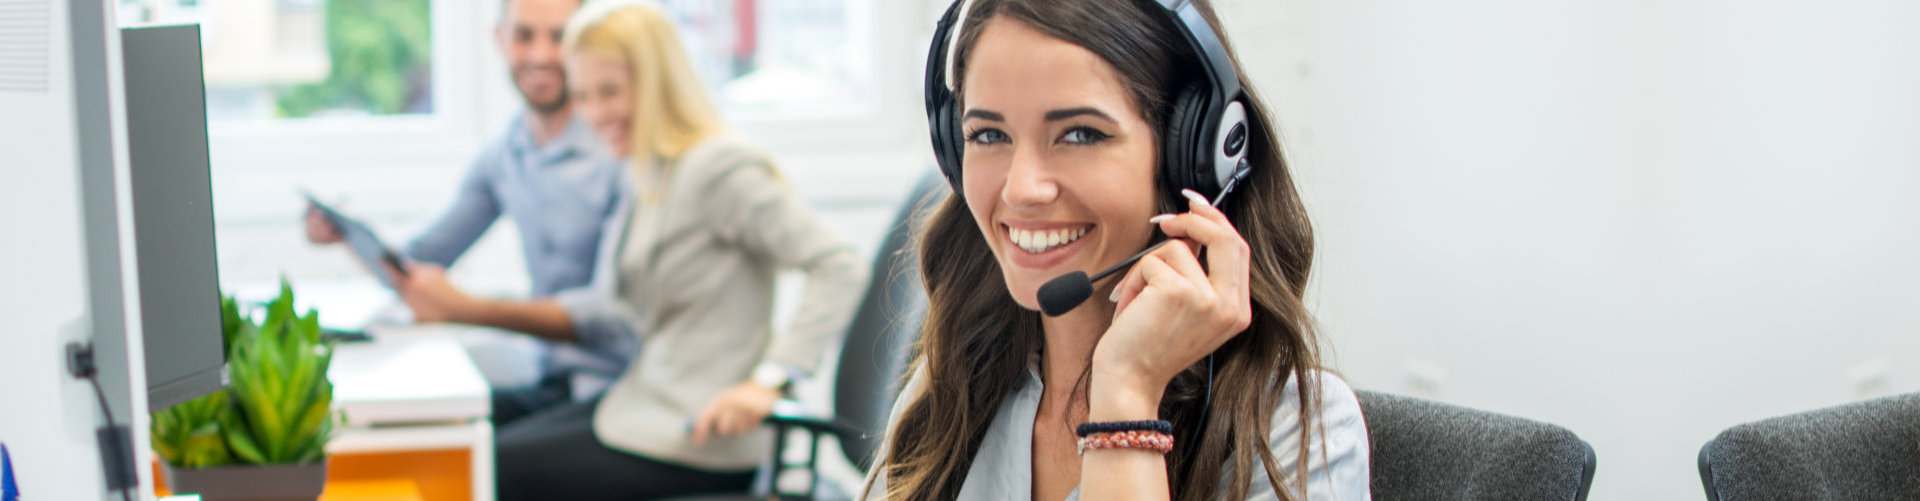 call center agent at work